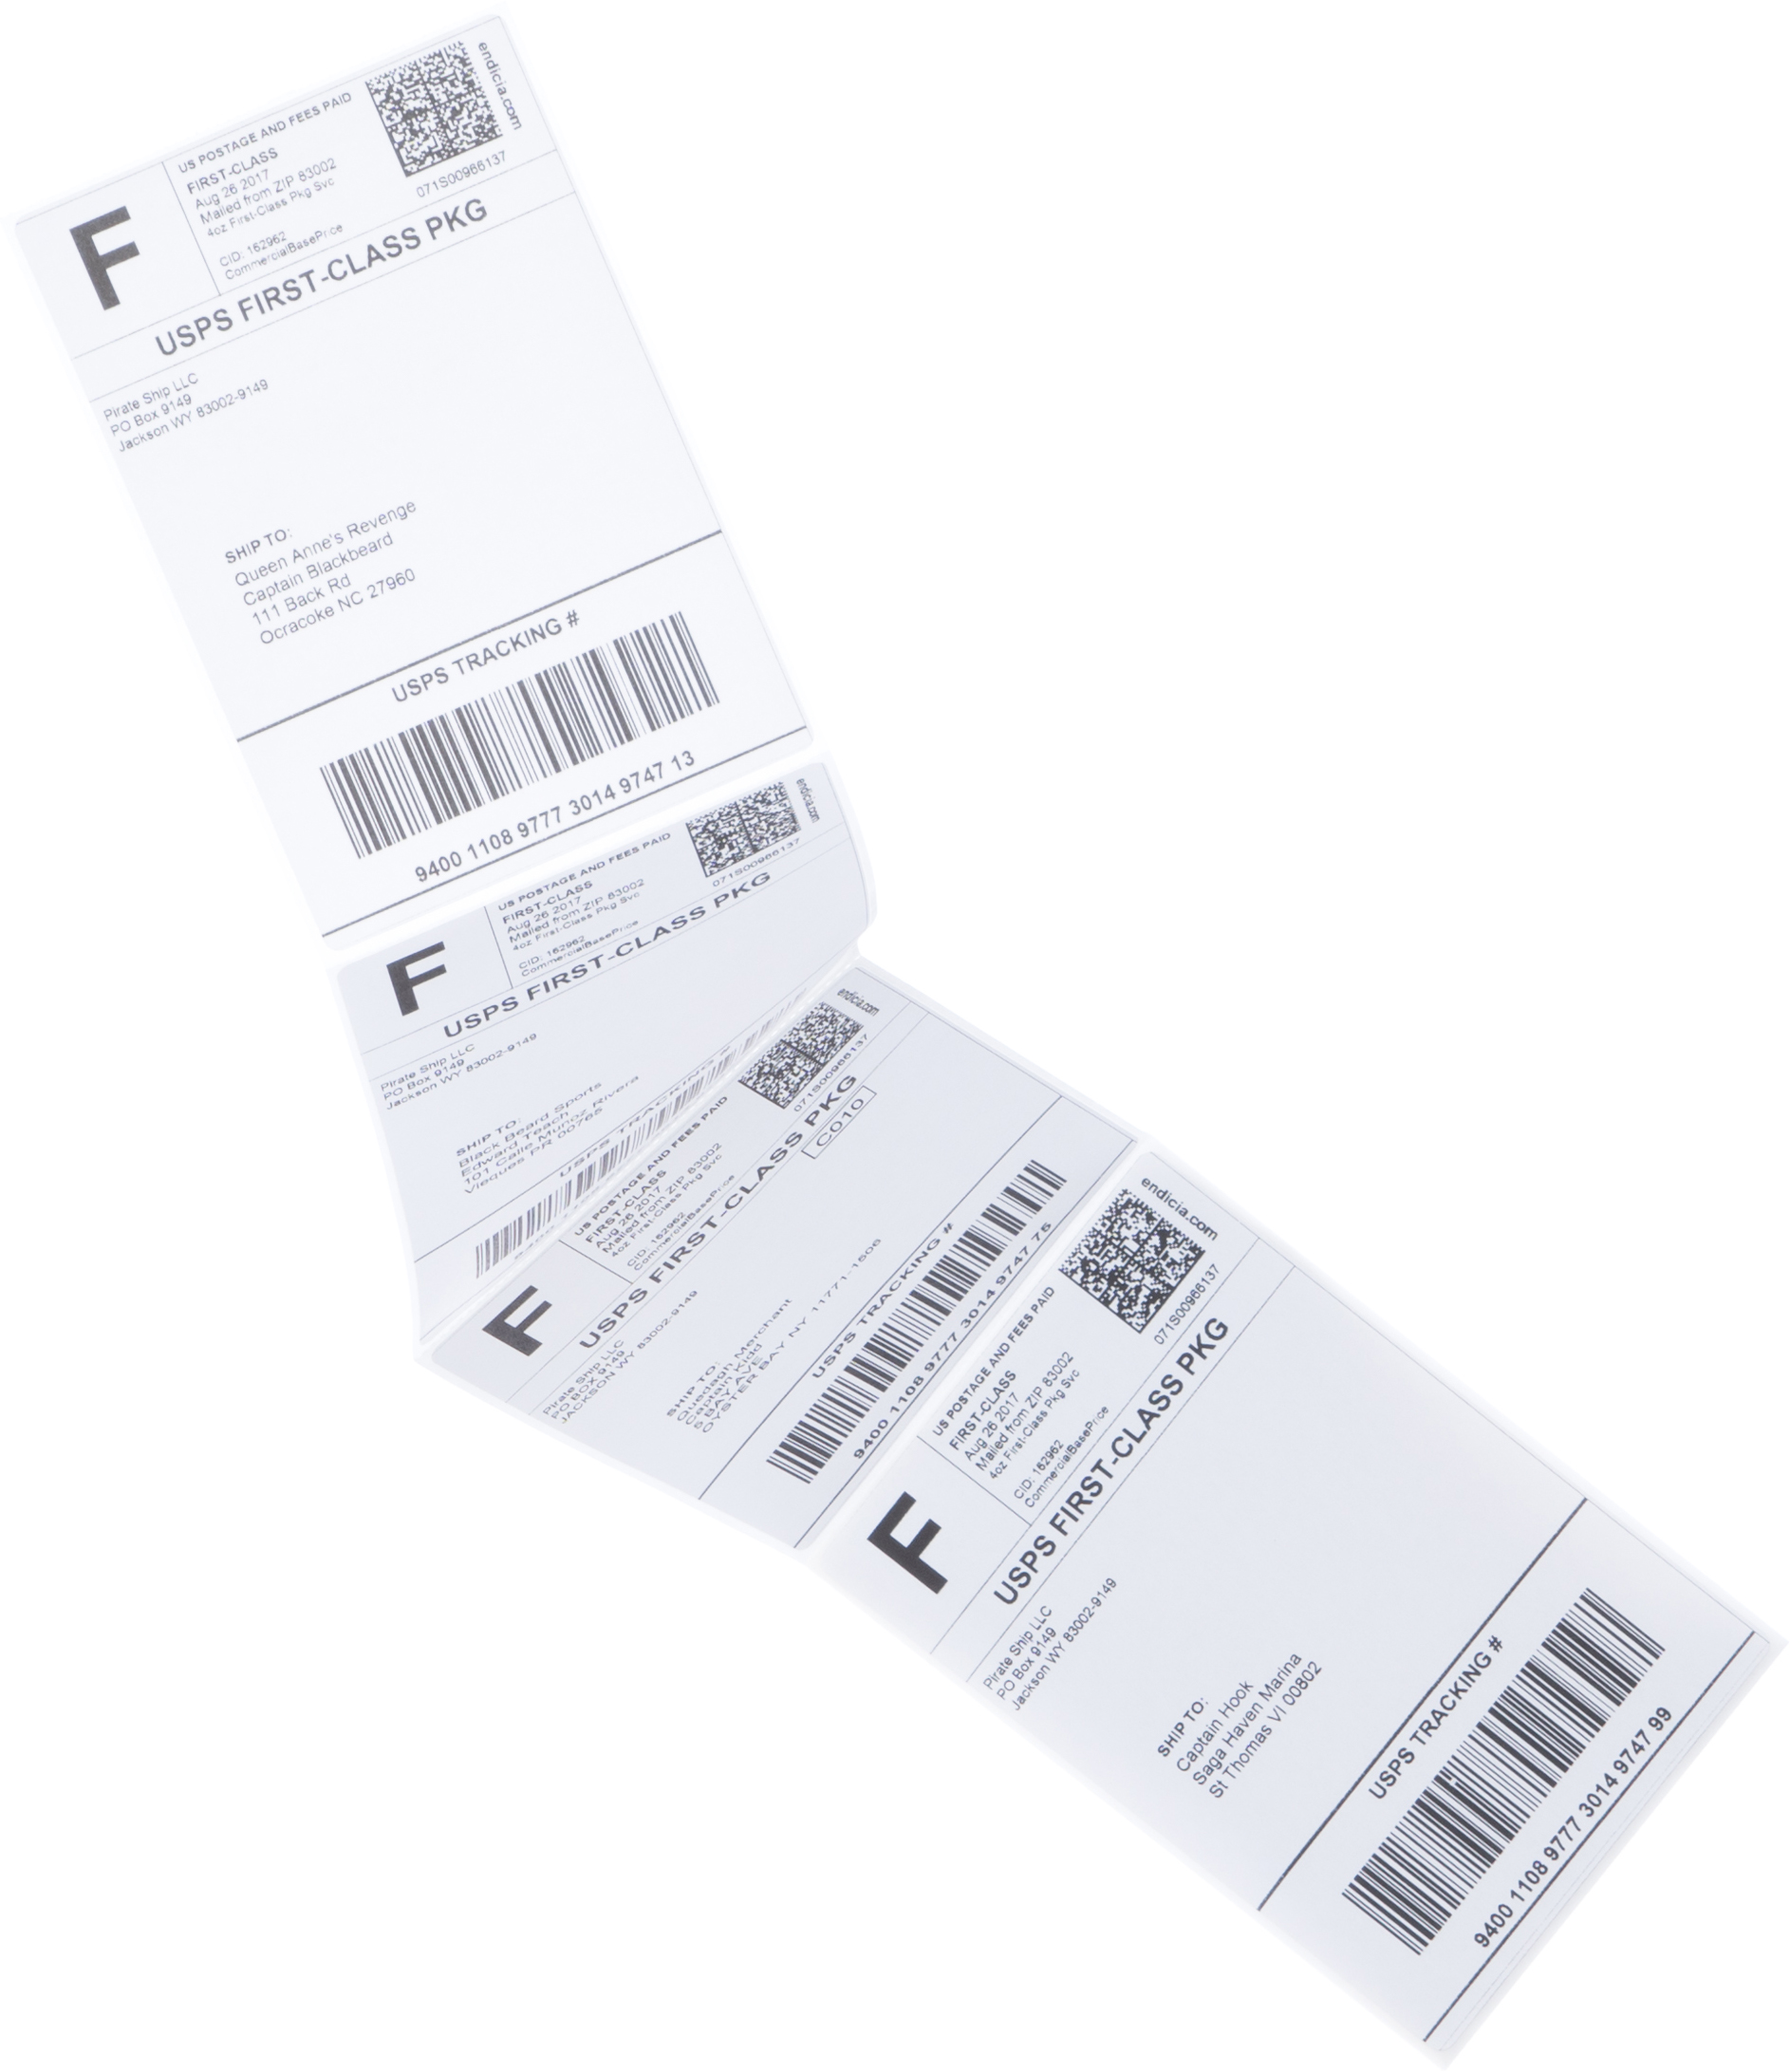 First Class Package postage labels